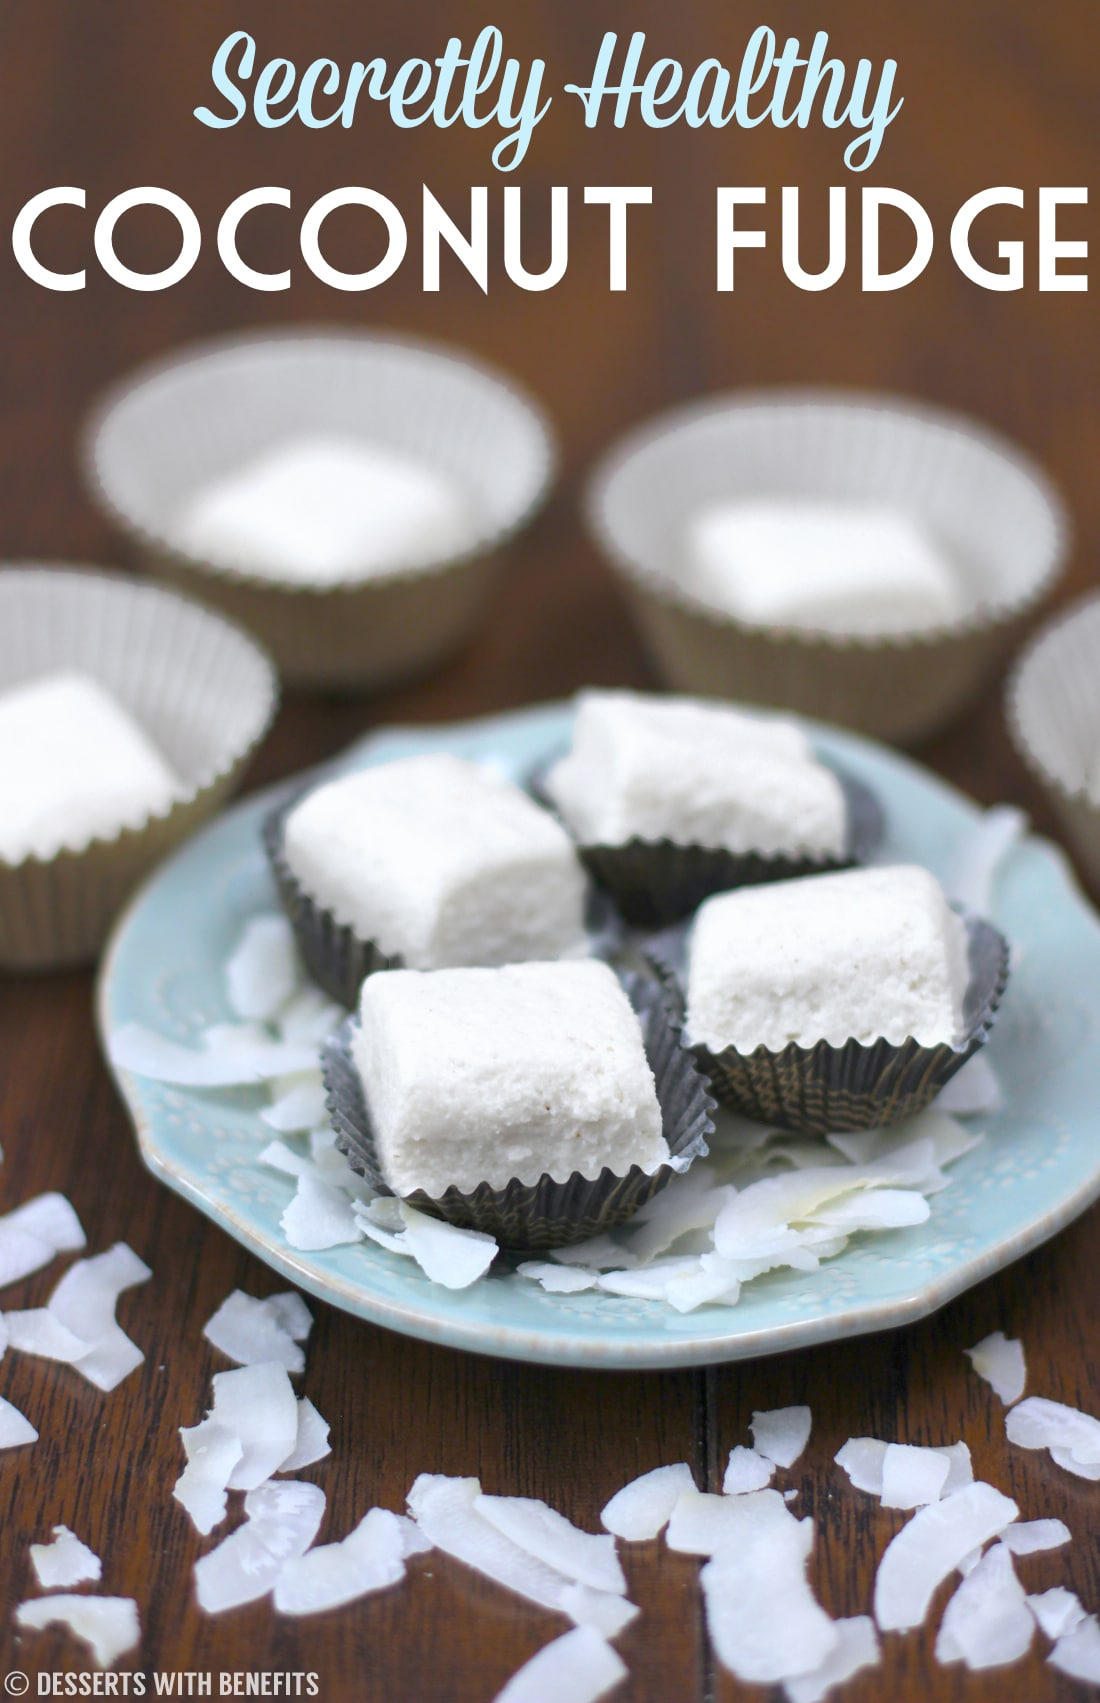 Healthy Coconut Fudge (sugar free, low fat, high protein, gluten free) - Healthy Dessert Recipes at Desserts with Benefits